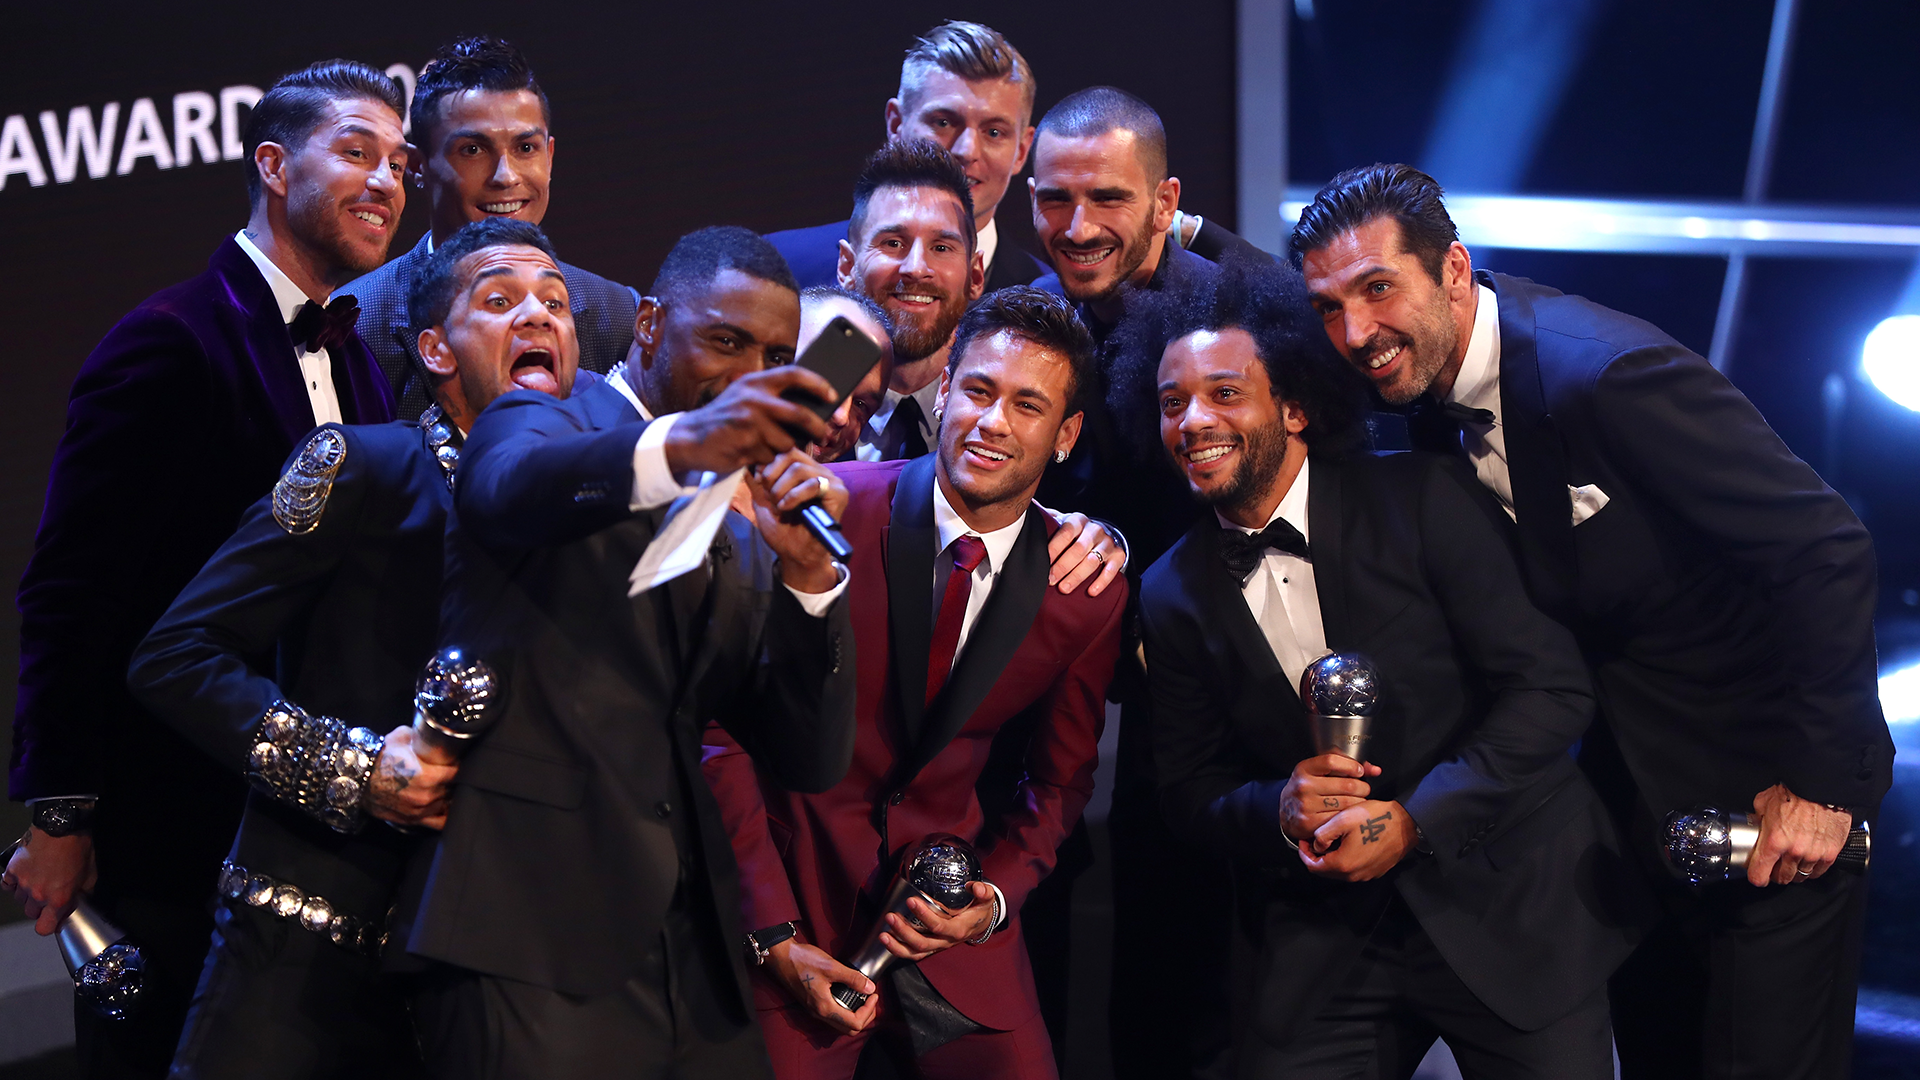 FIFA's The Best Awards 2018: When is it, who are the